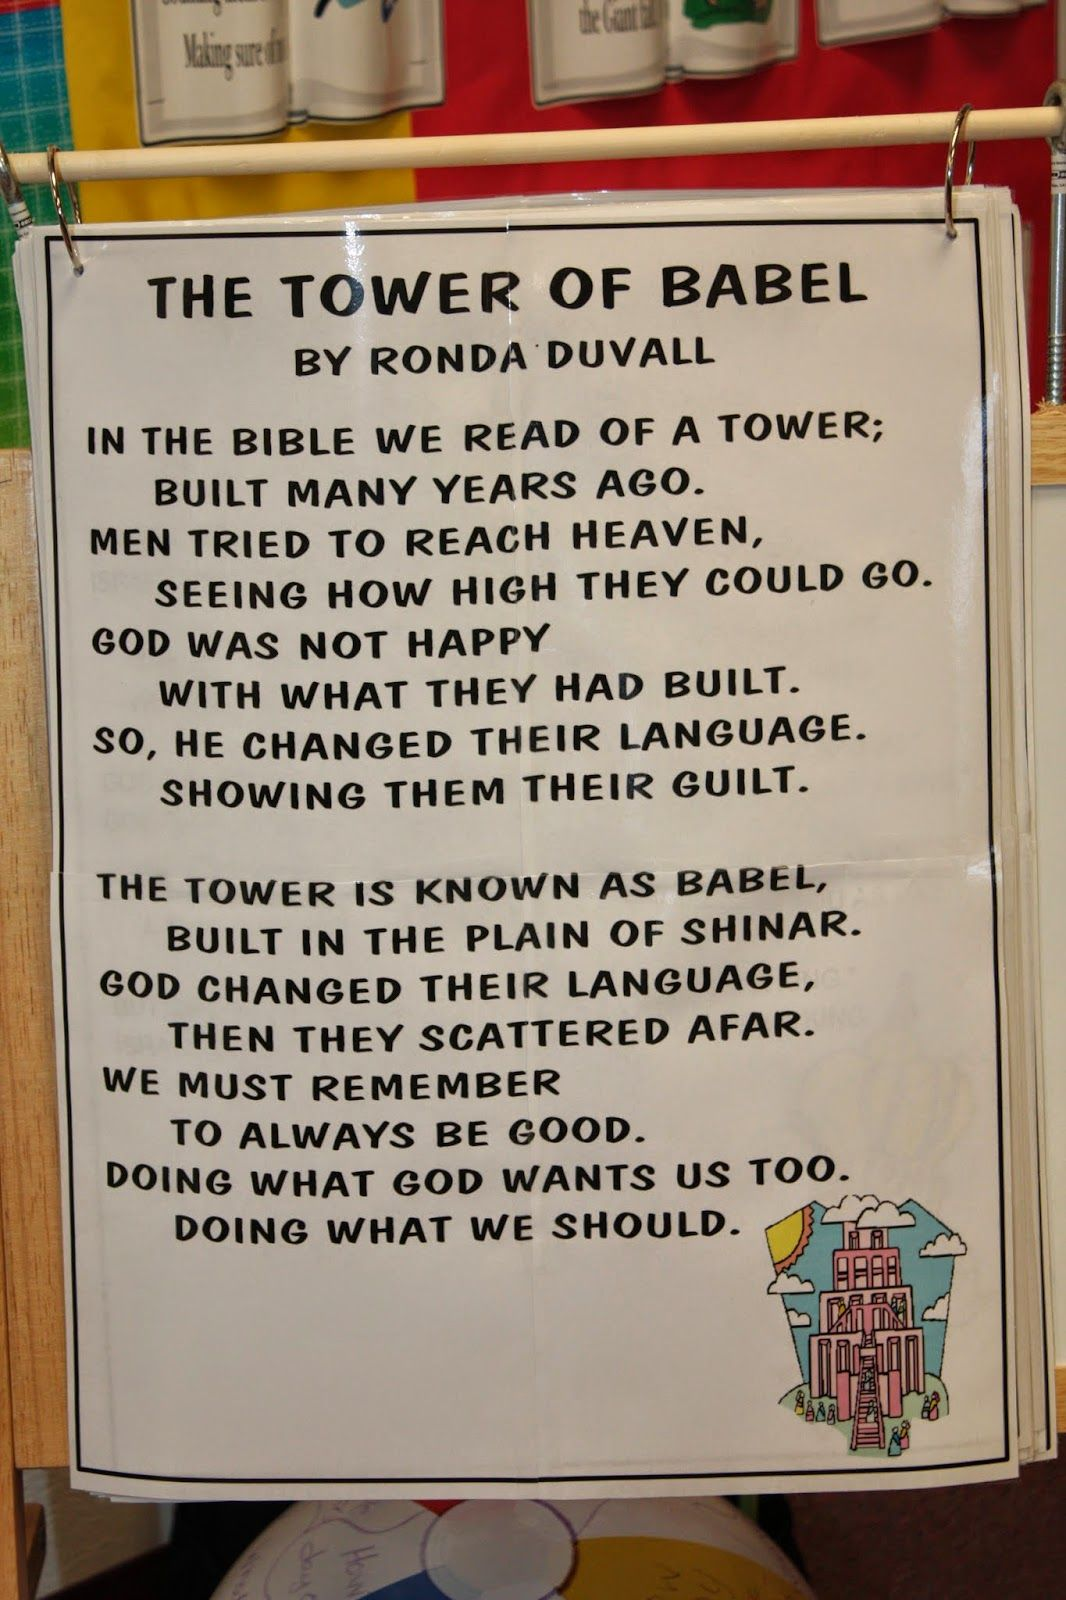 Hands On Bible Teacher: Tower of Babel song by RONDA DUVALL